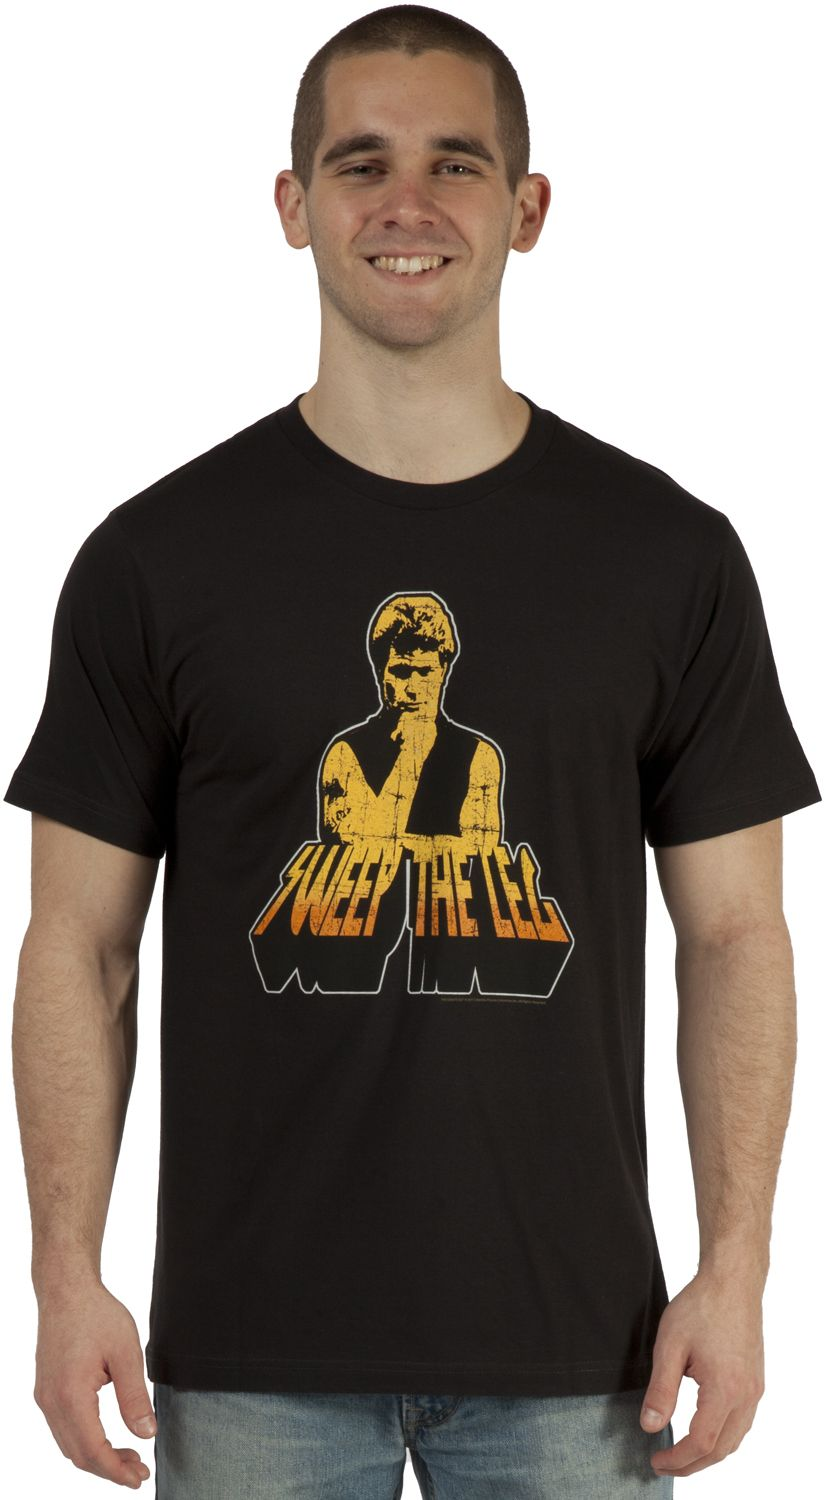 943127660 80stees.com Sweep The Leg Cobra Kai T-Shirt | Clothing and stuff ...